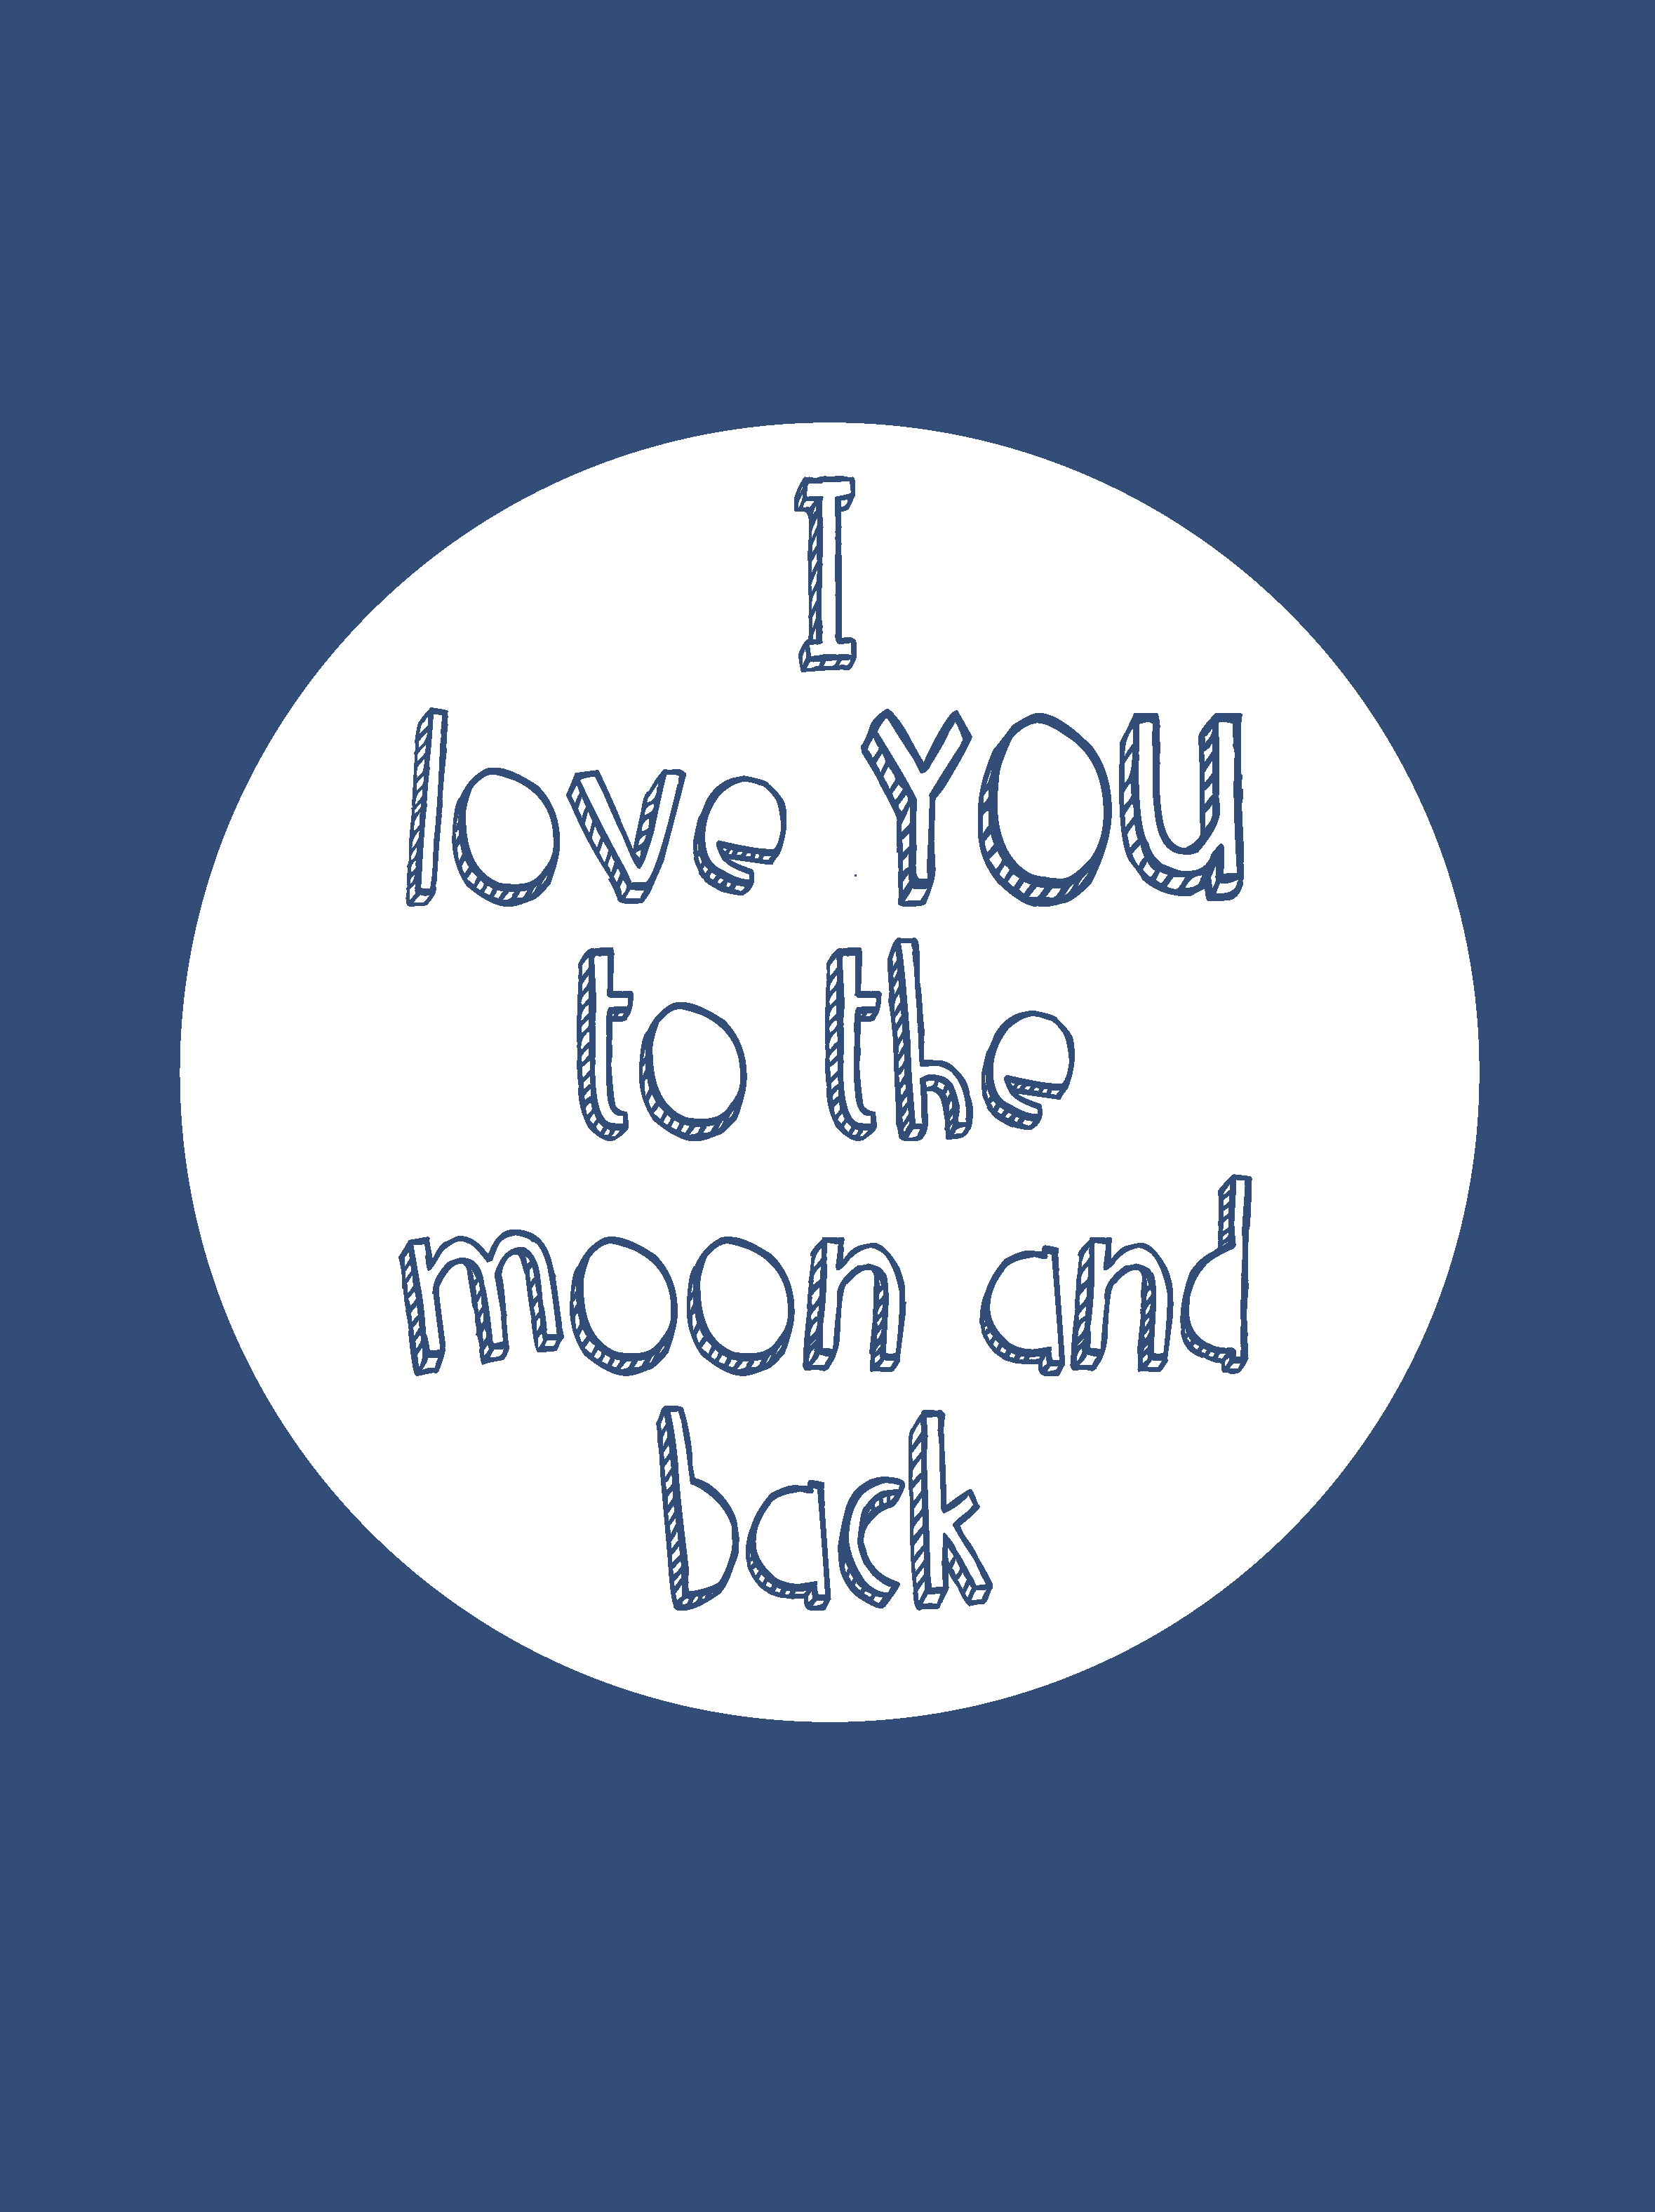 Poster i love you to the moon and back studio inktvis poster 40 x poster i love you to the moon and back studio inktvis poster 40 x 30 cm voltagebd Images